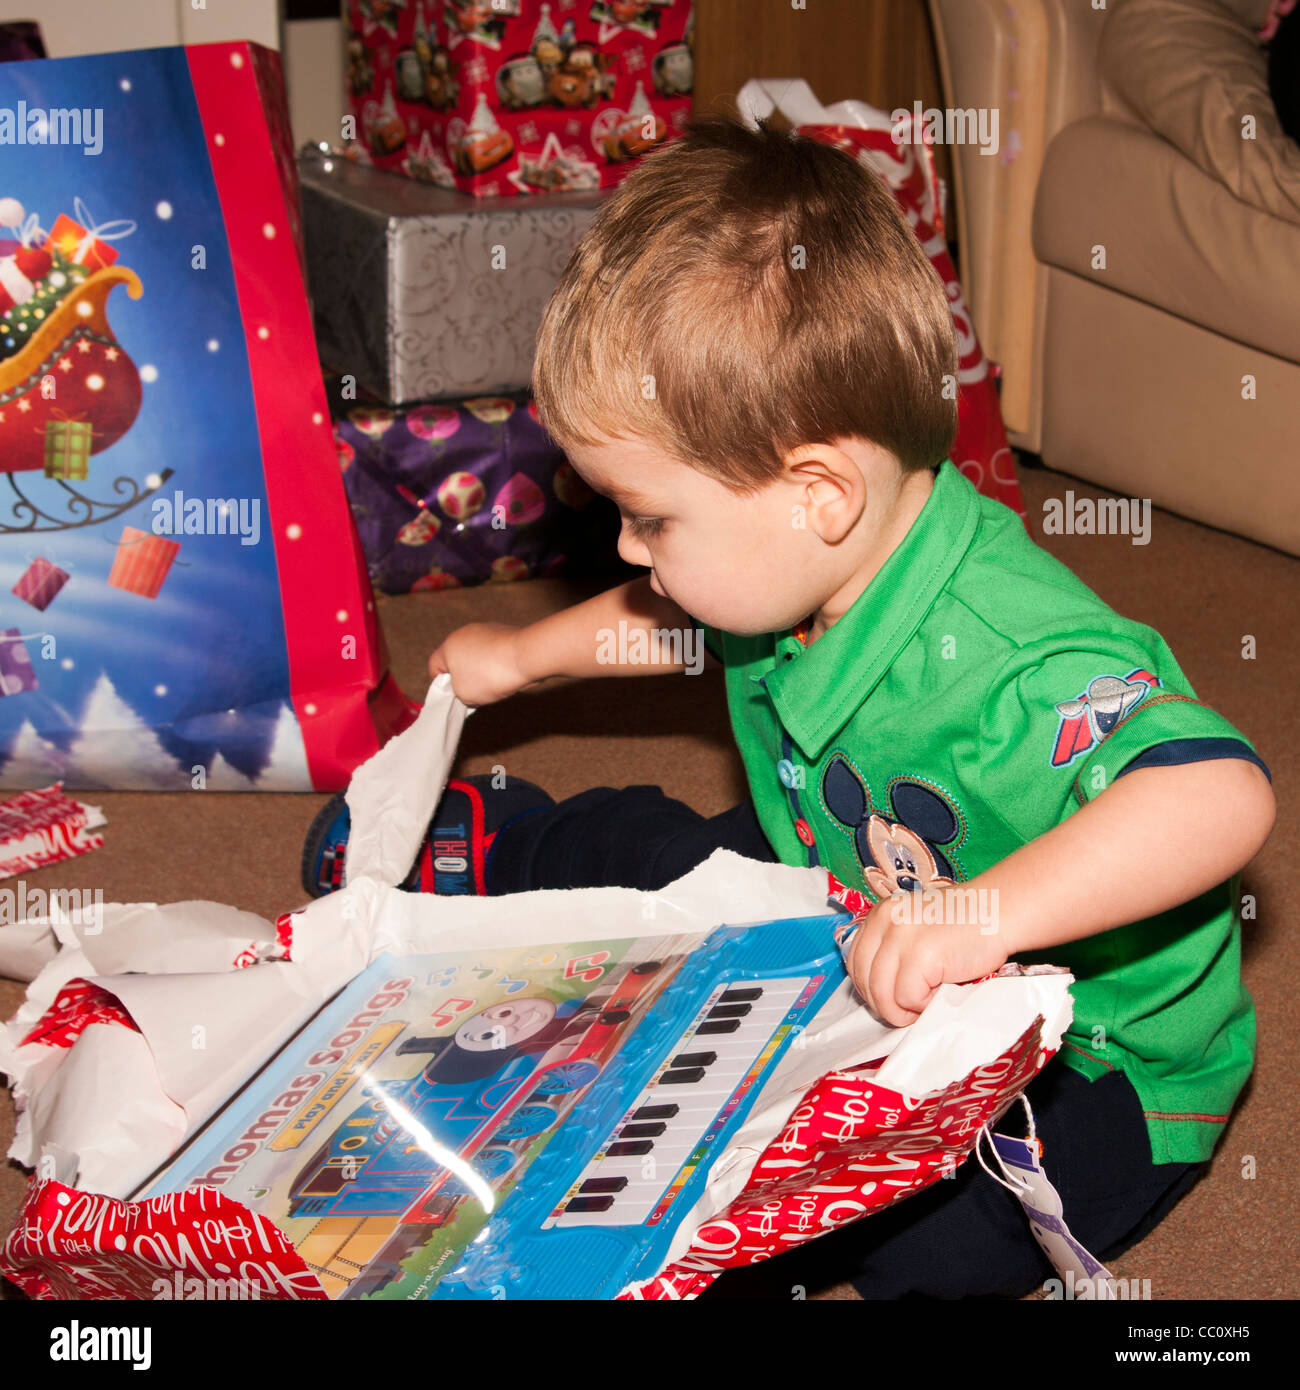 2 Year Old Young Child Boy Infant Toddler Opening A Xmas Christmas ...